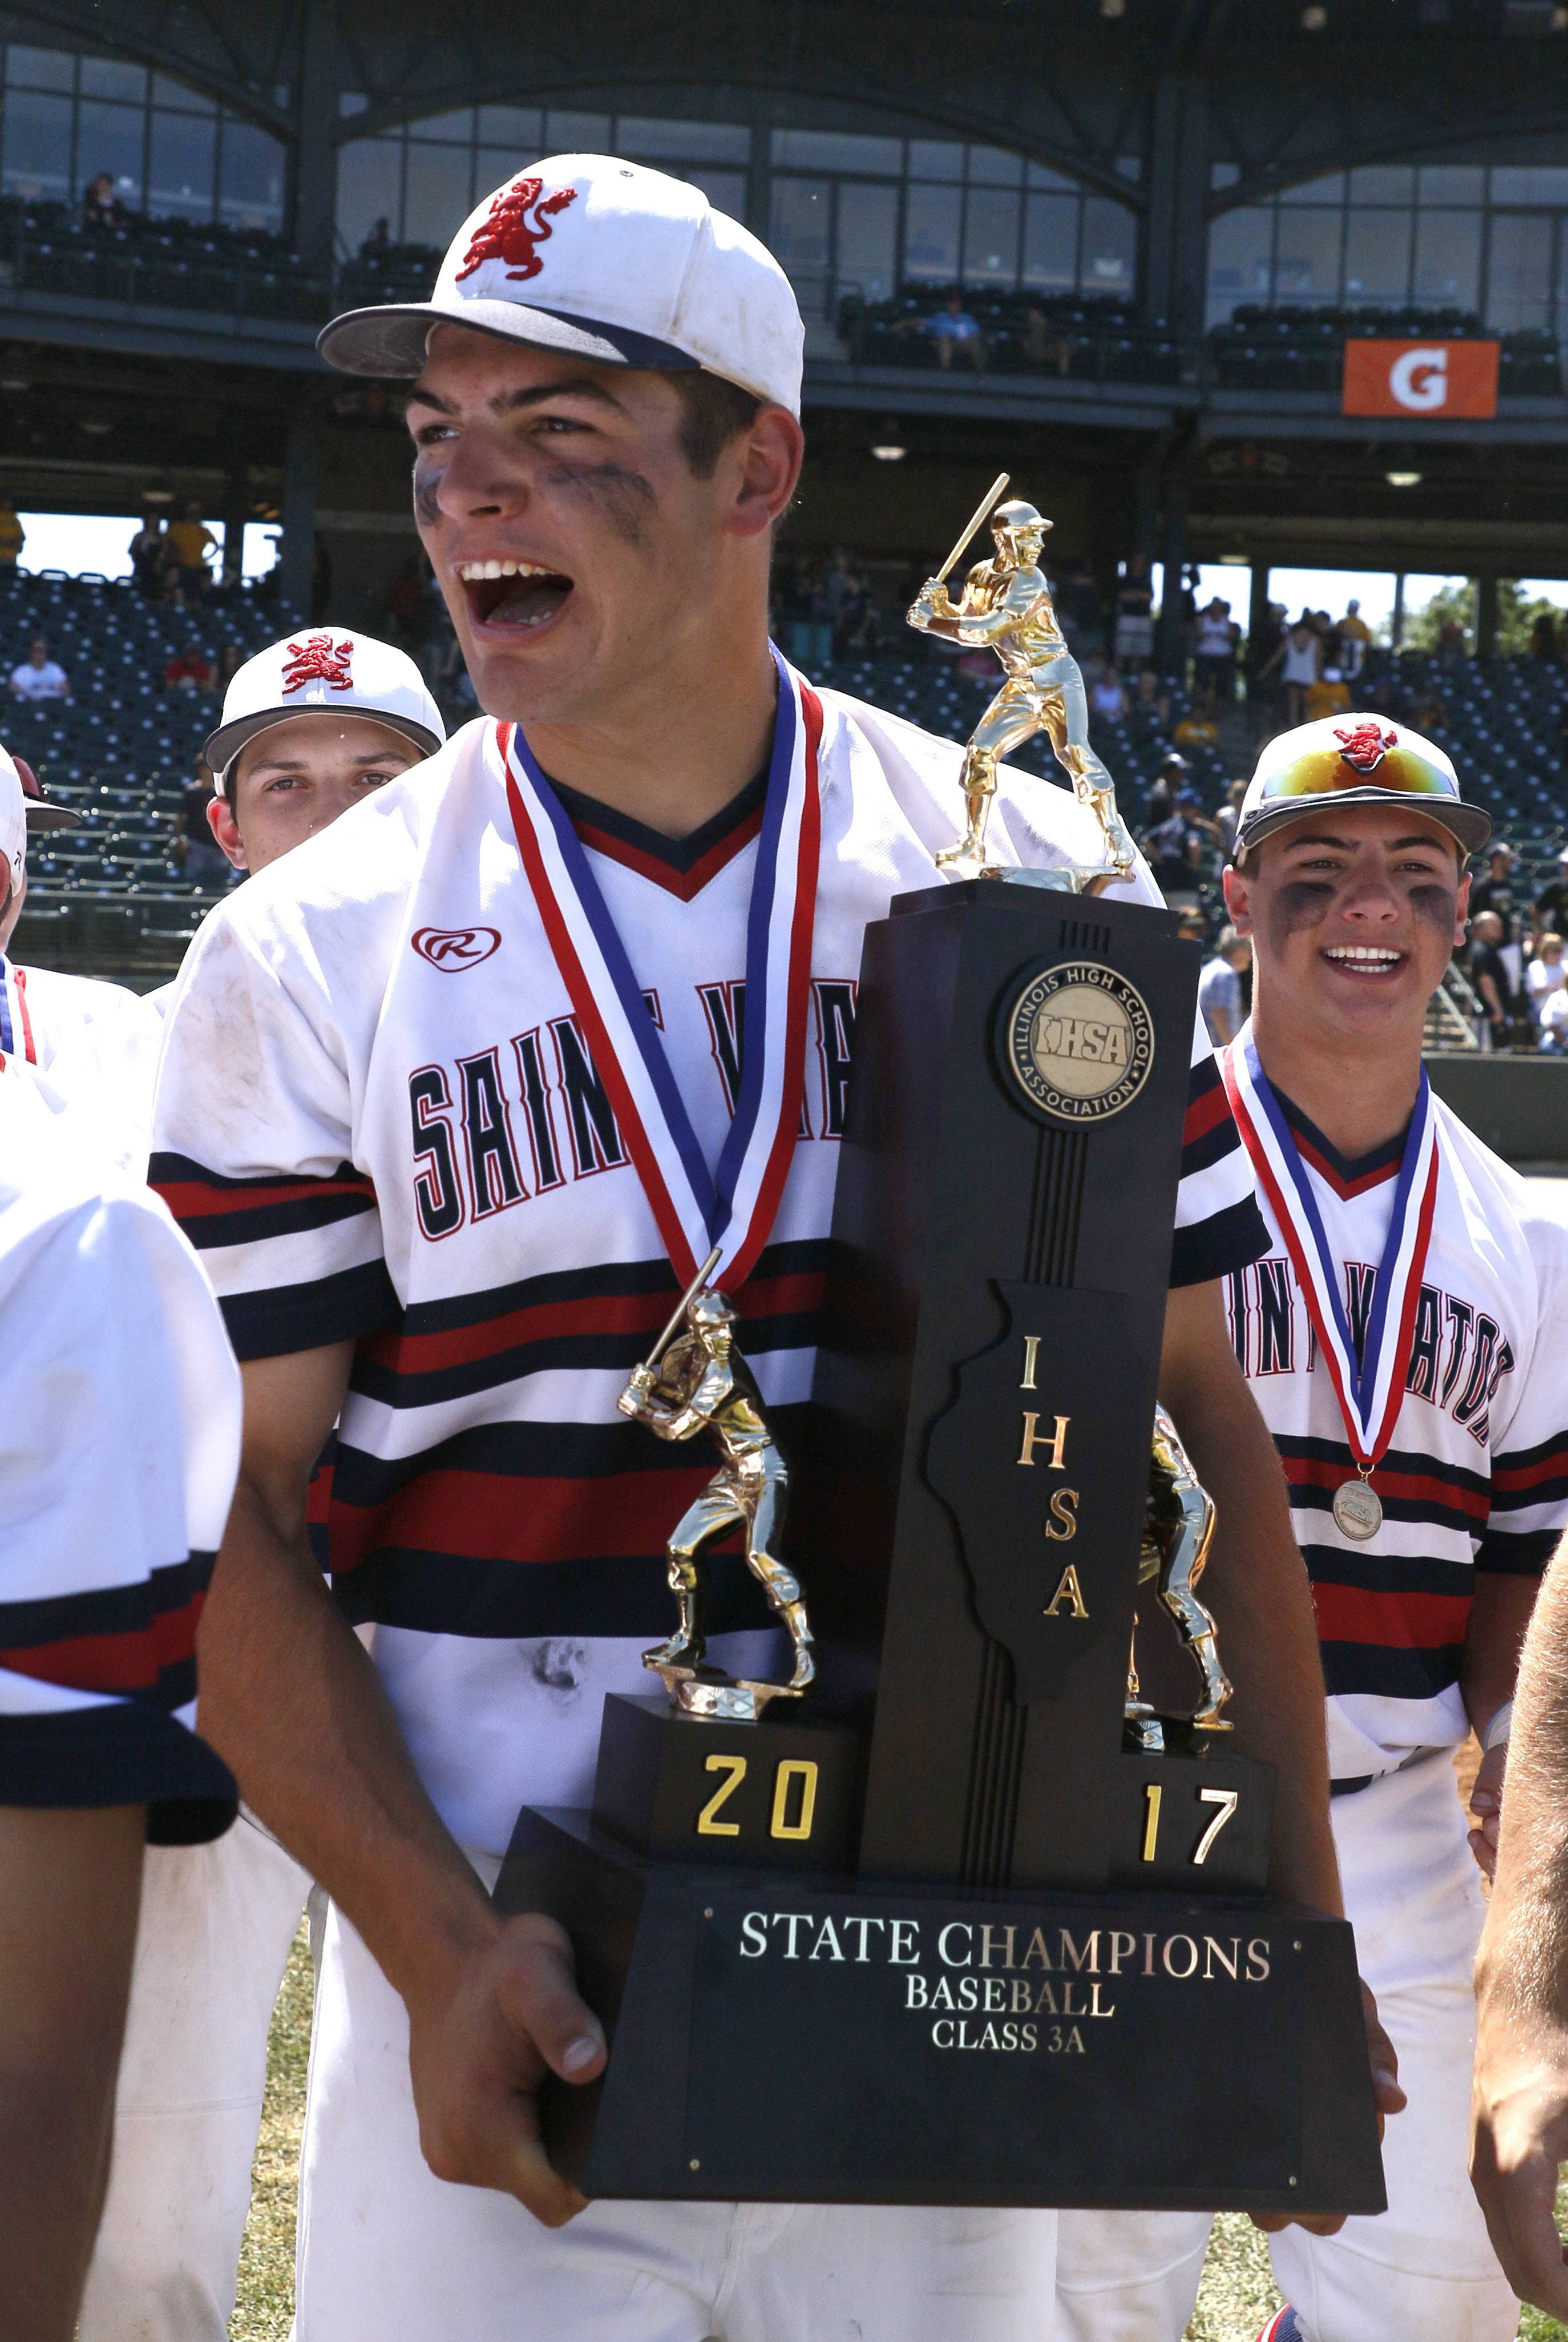 St. Viator senior Cole Kmet hoists the Class 3A baseball state championship trophy after Saturday's 10-8 win over Marian Catholic on Saturday in Joliet.